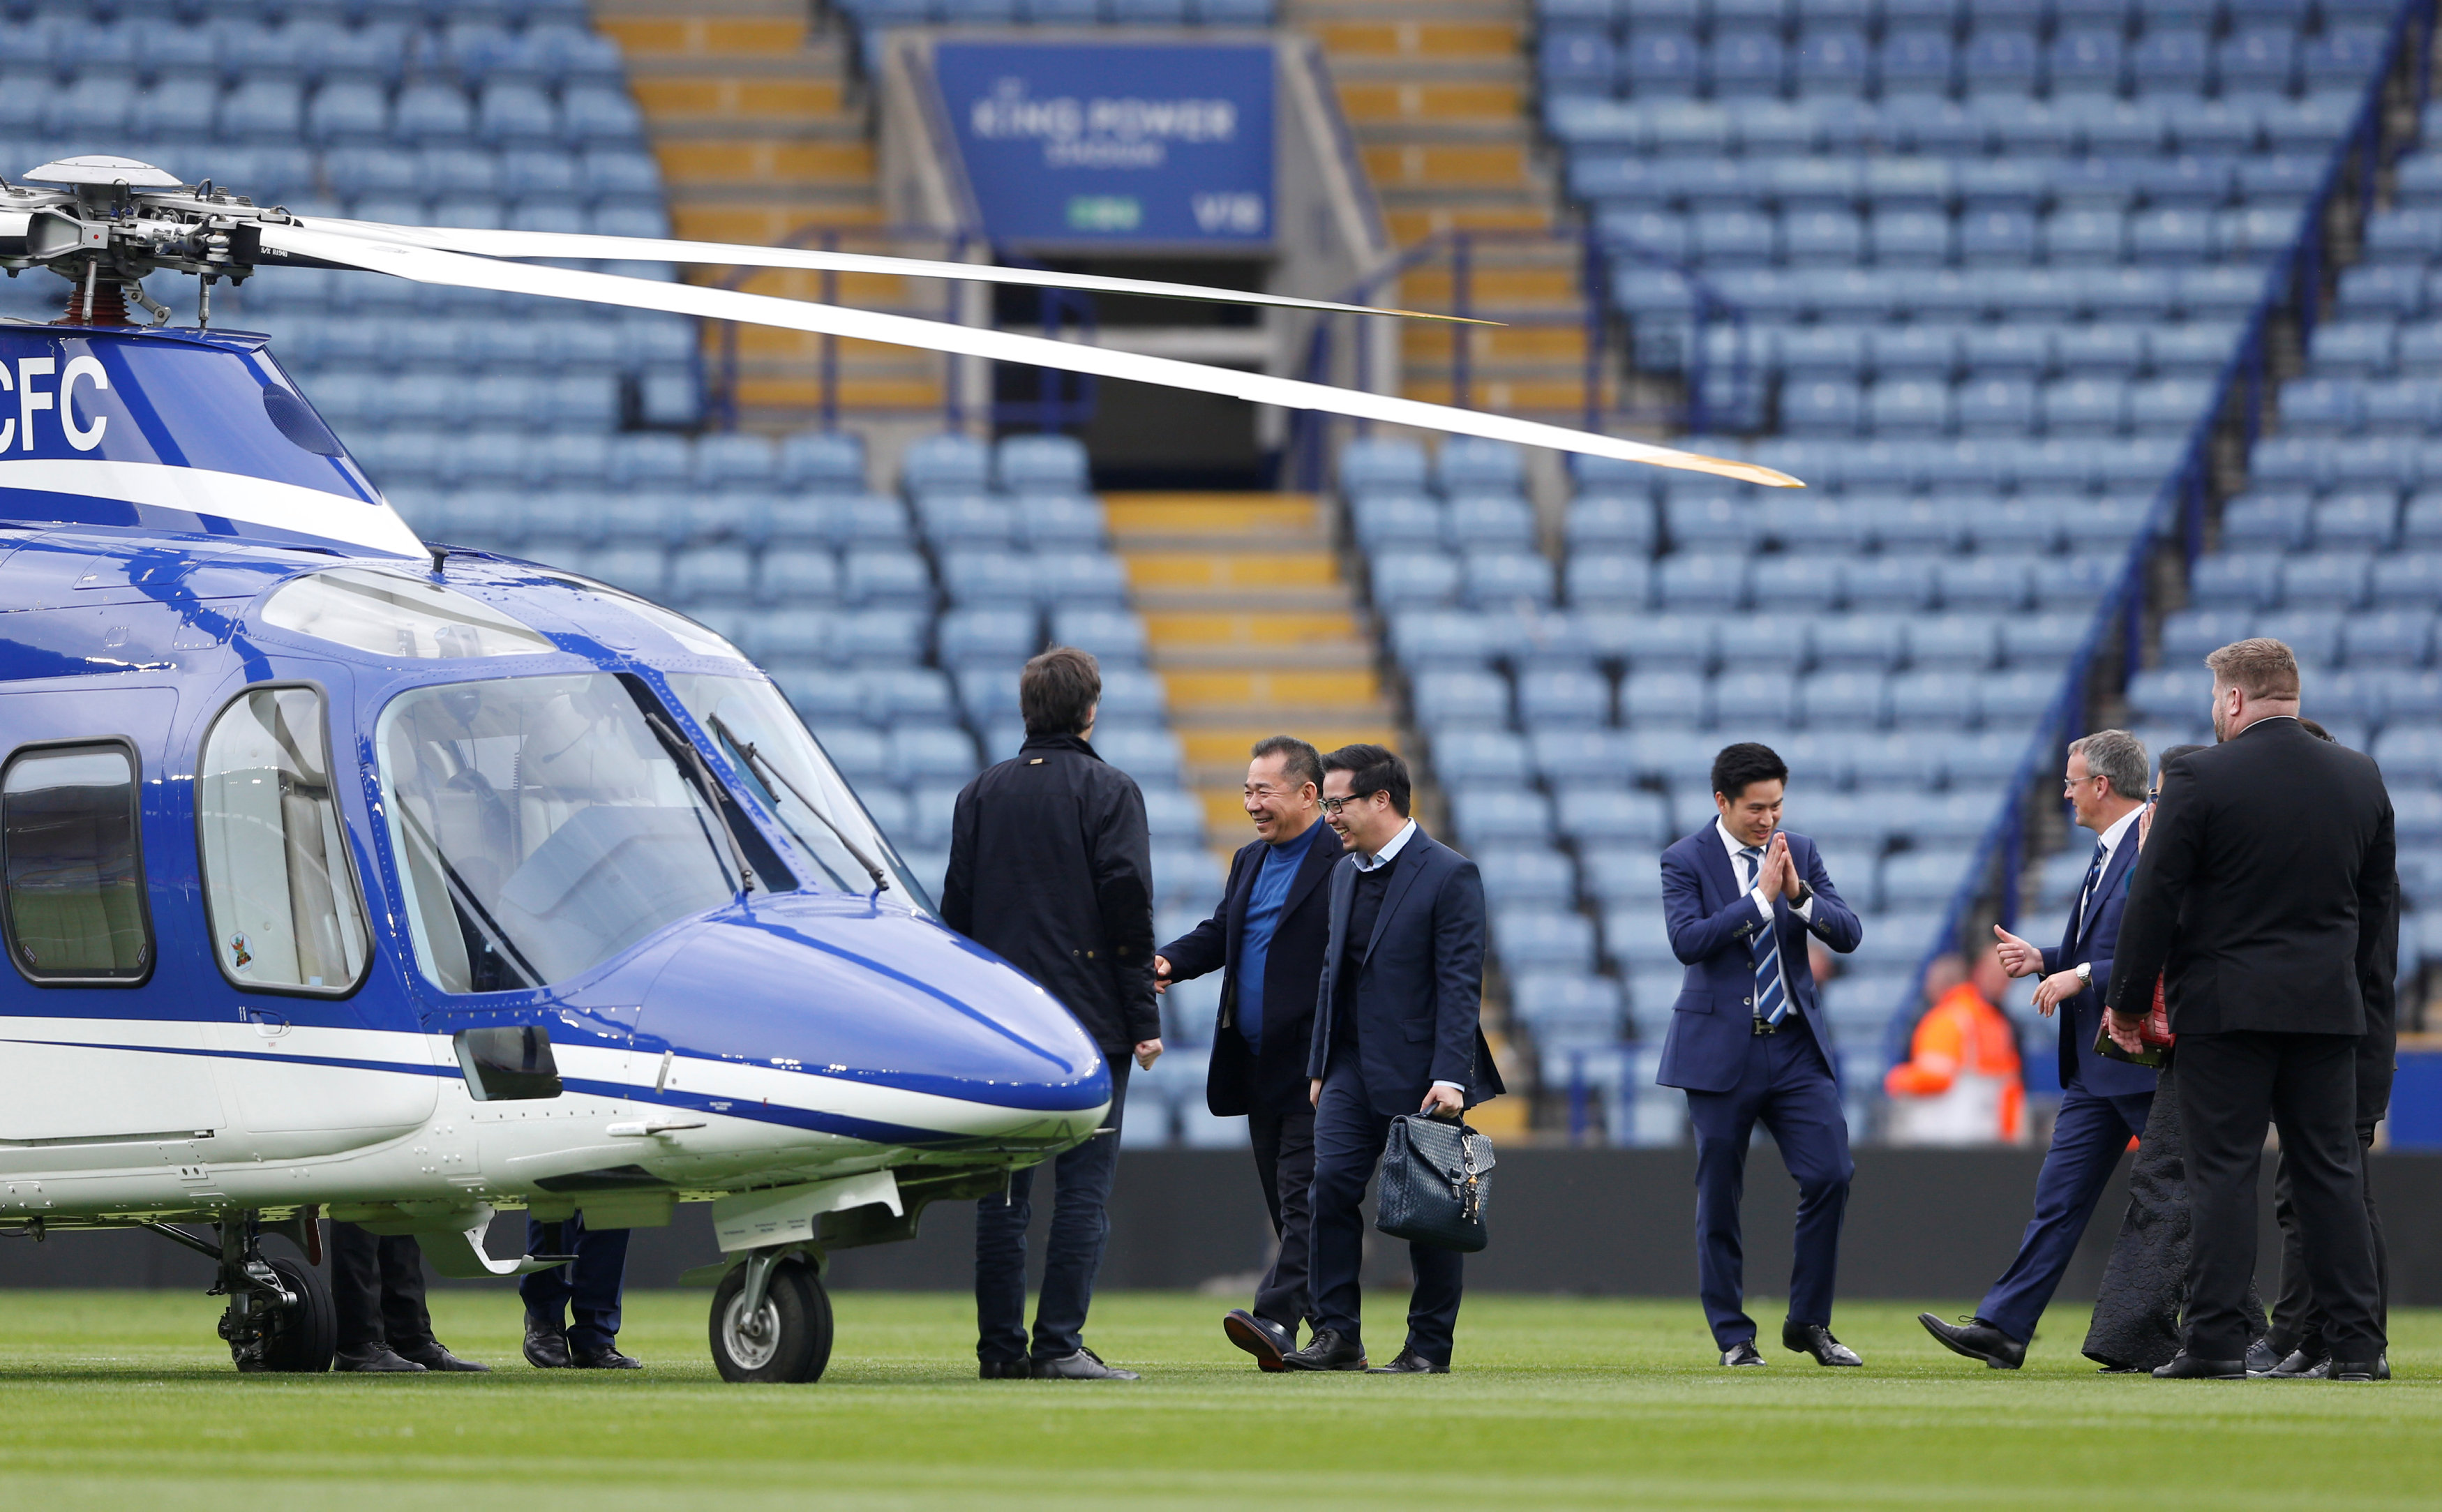 FILE PHOTO: Football Soccer - Leicester City v Southampton - Barclays Premier League - The King Power Stadium - April 3, 2016 Leicester City chairman Vichai Srivaddhanaprabha walks to his helicopter which has landed on the pitch after the game.  Reuters